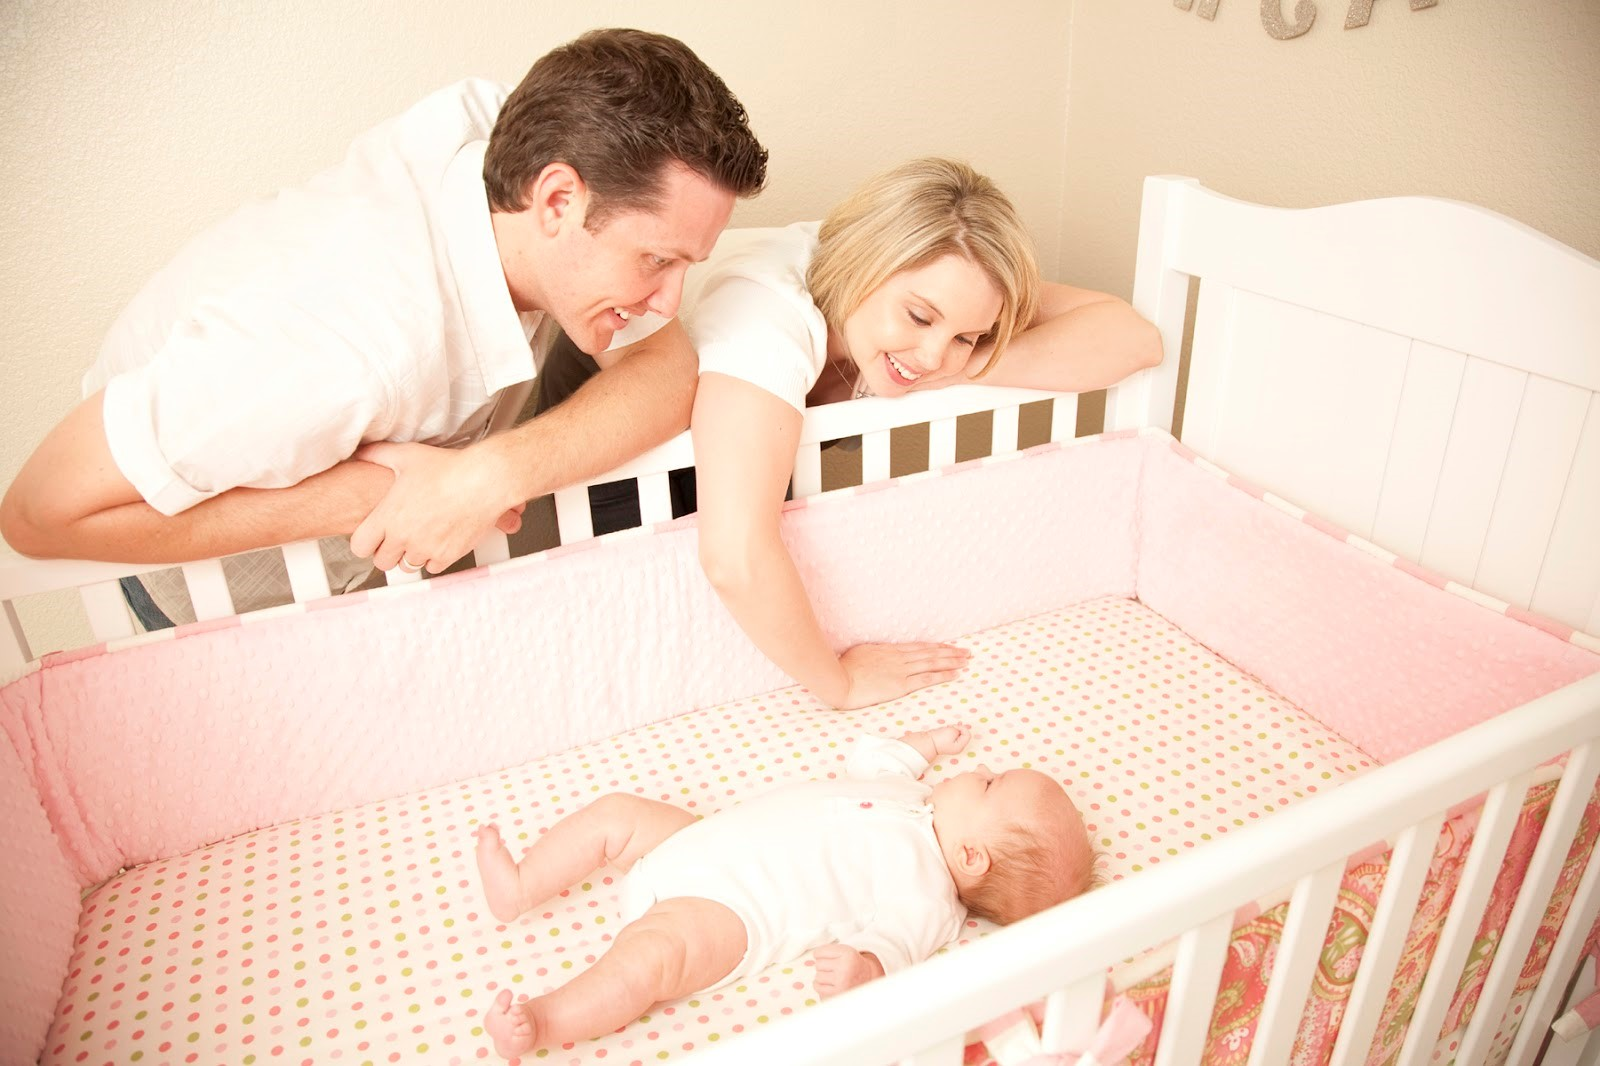 Top 5 Tips To Design and Decorate Your Dream Nursery